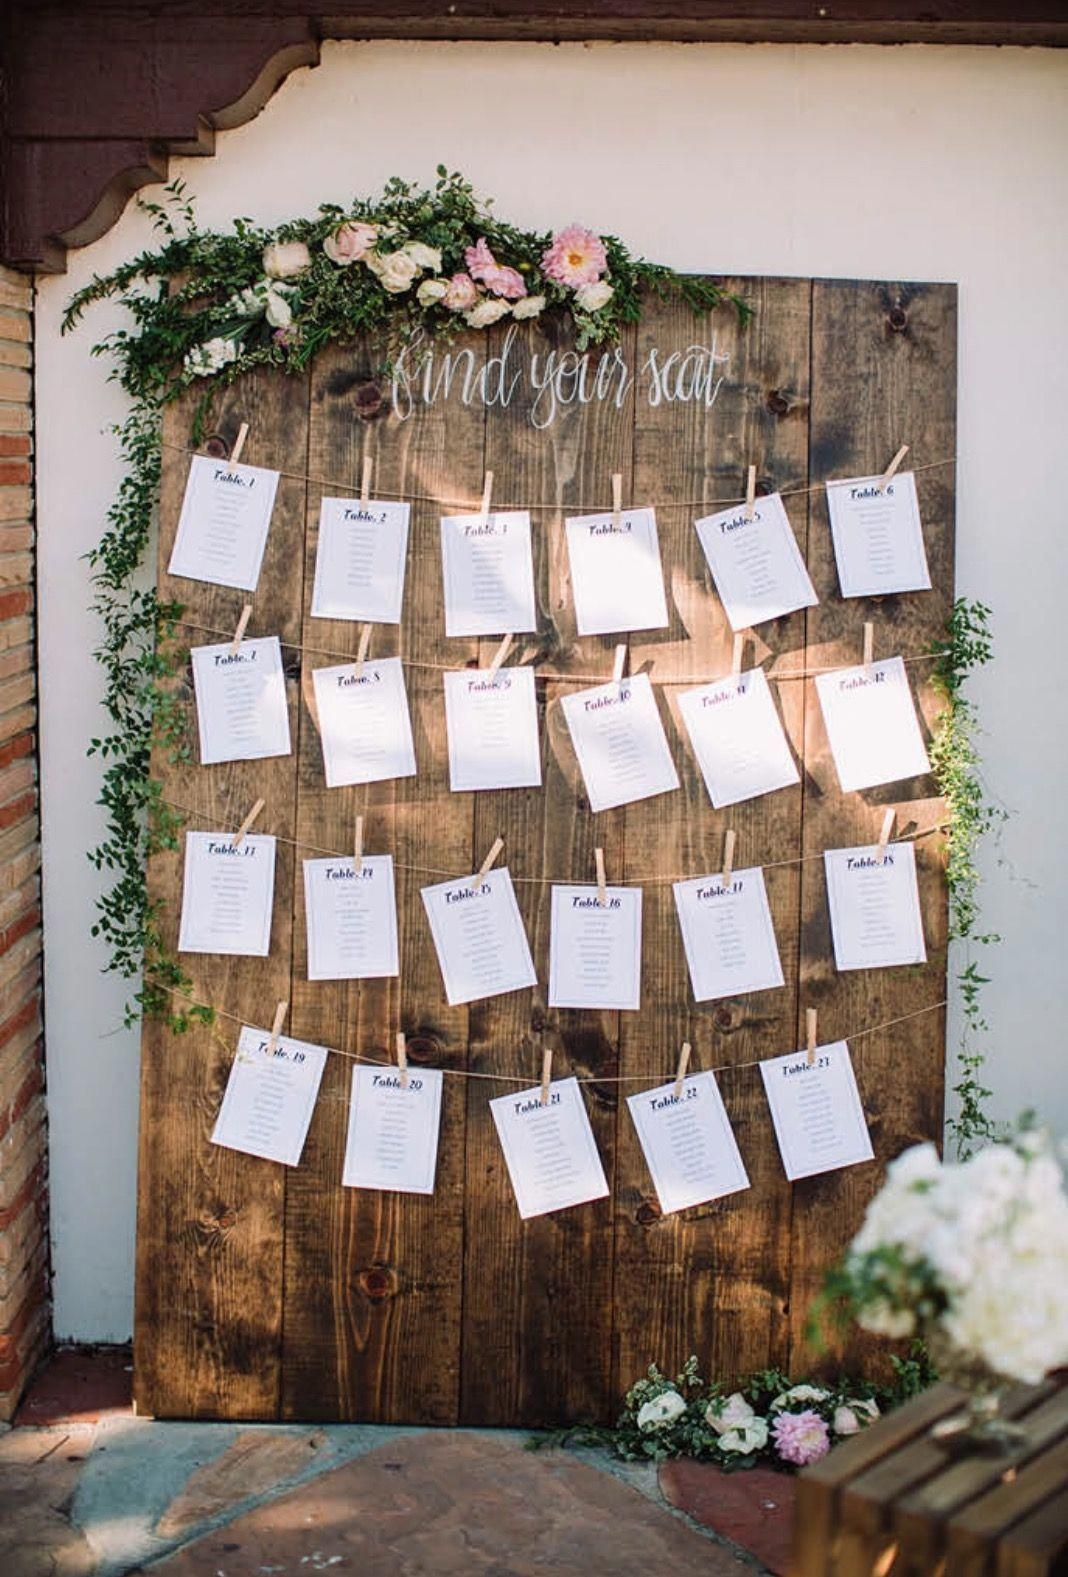 This Could Appeal To Your Interest How To Start Wedding